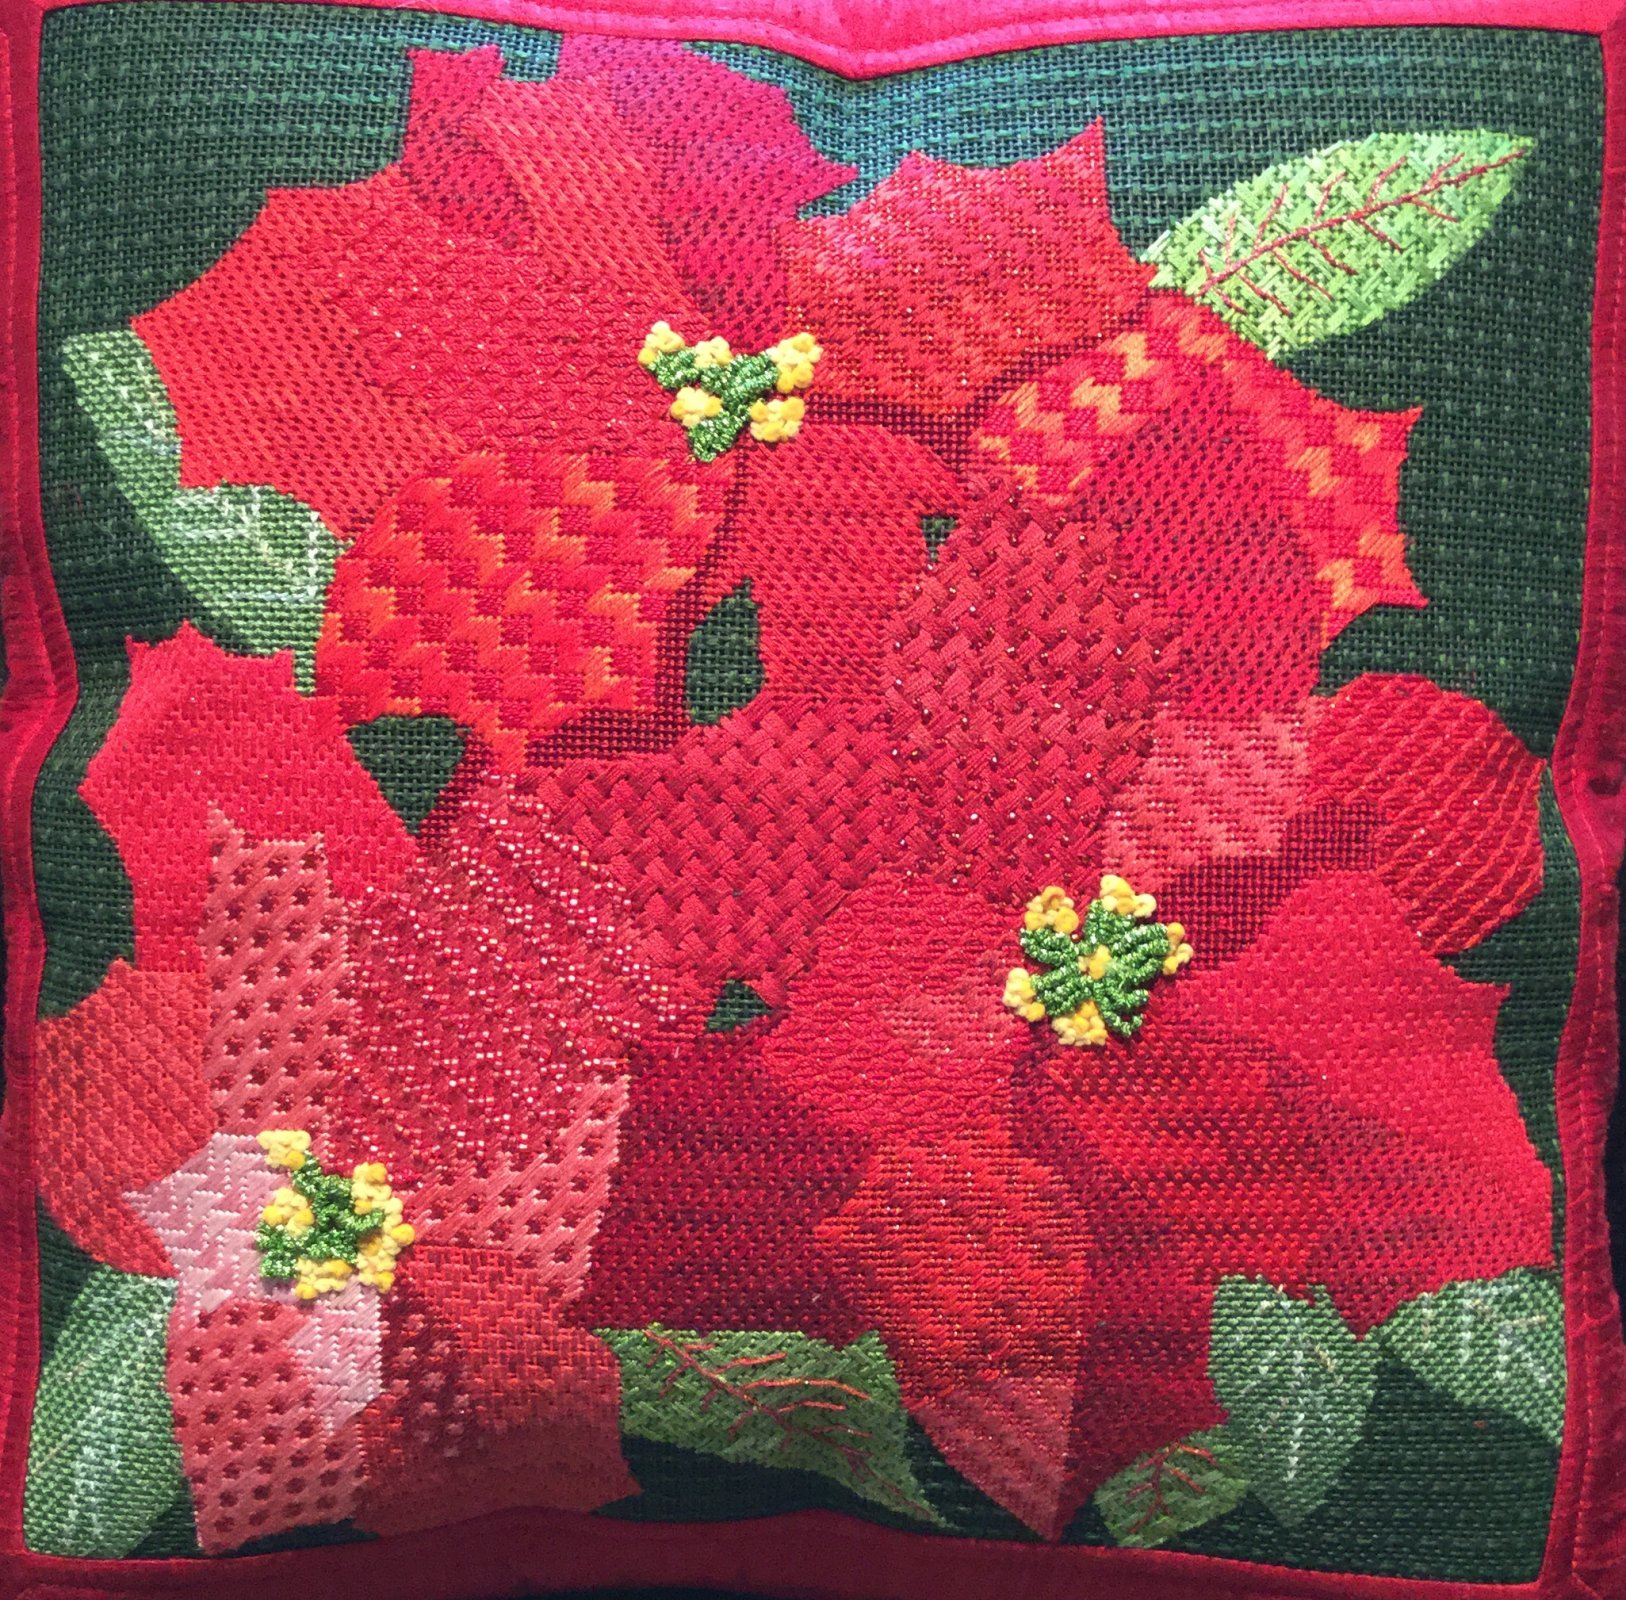 GIANT POINSETTIAS STITCH GUIDE